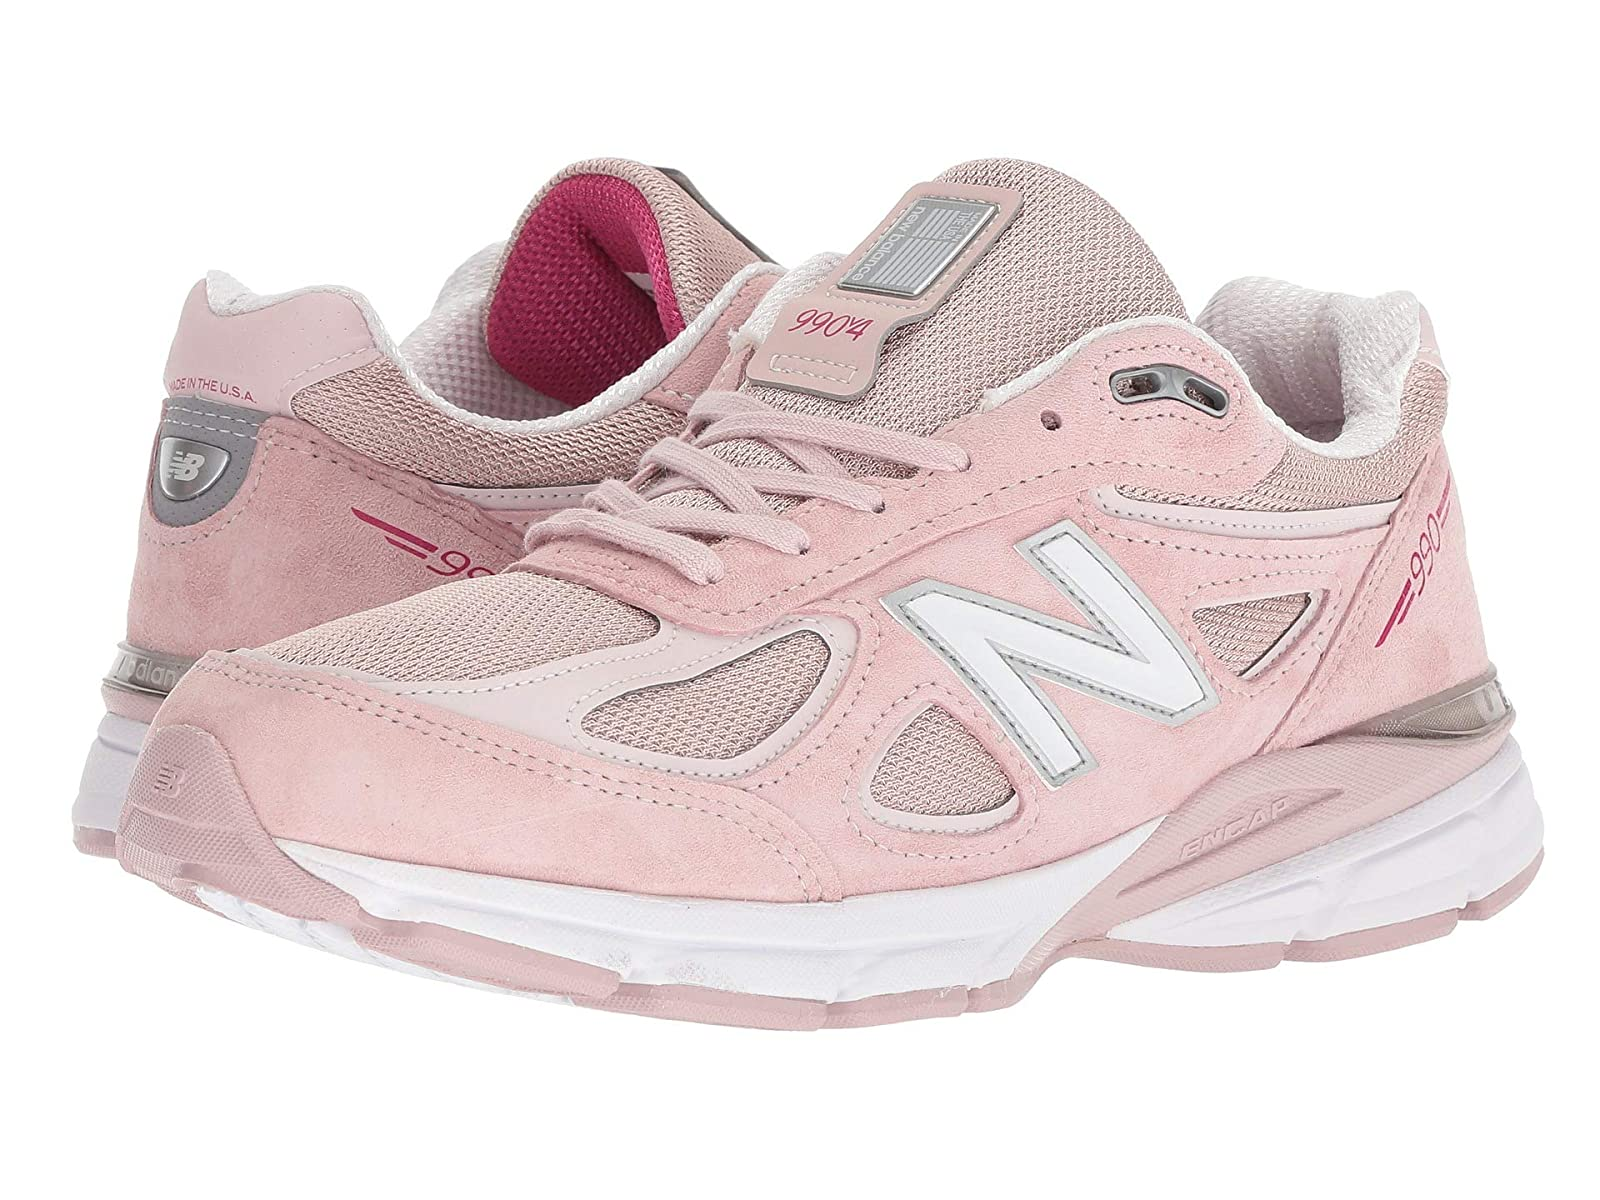 New Balance M990V4Atmospheric grades have affordable shoes